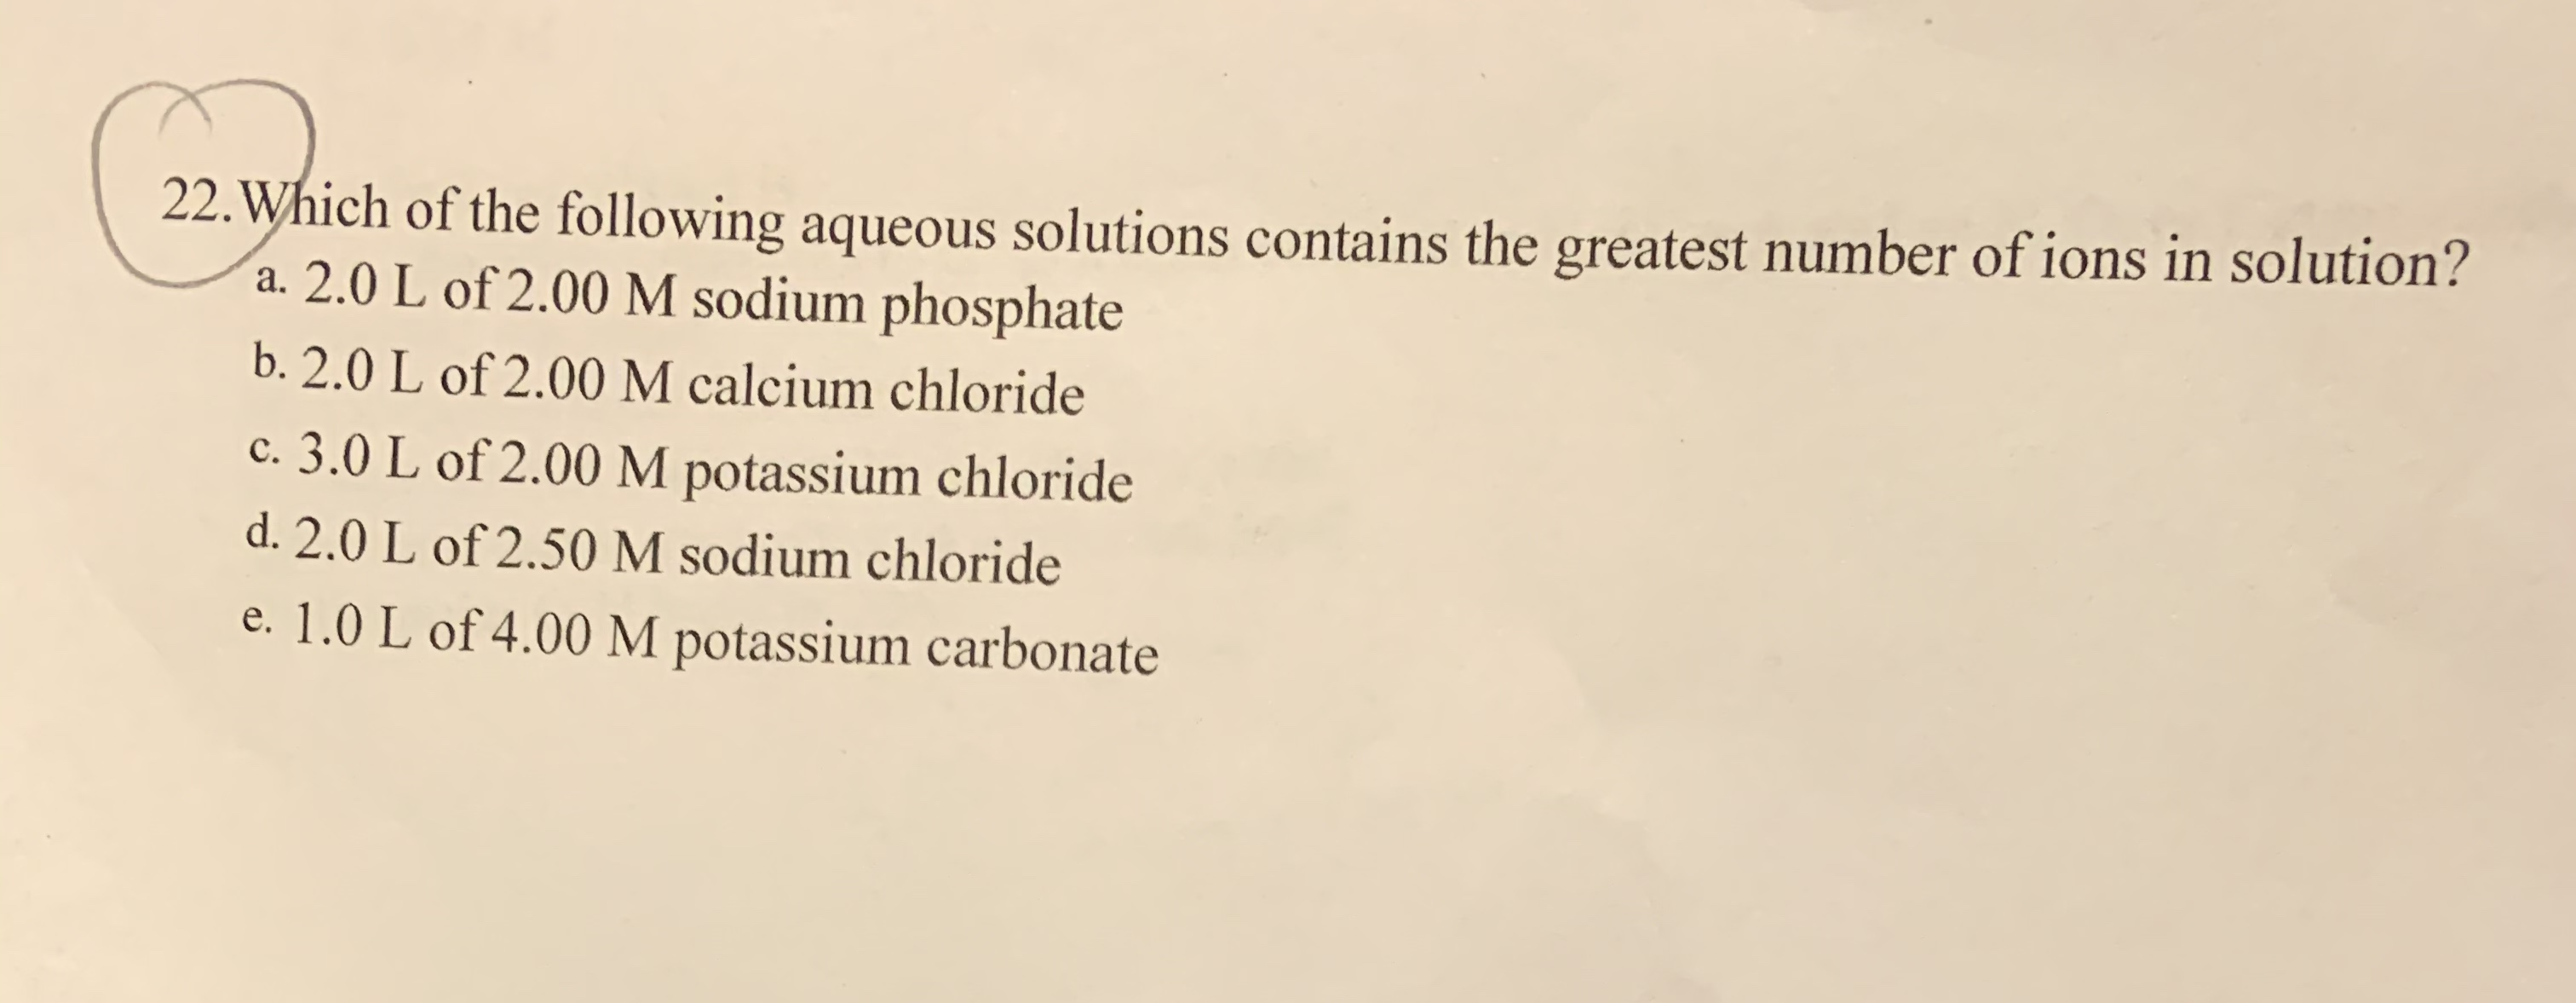 22. Which of the following aqueous solutions contains the greatest number of ions in solution? a. 2.0 L of 2.00 M sodium phosphate b. 2.0 L of 2.00 M calcium chloride c. 3.0 L of 2.00 M potassium chloride d. 2.0 L of 2.50 M sodium chloride e. 1.0 L of 4.00 M potassium carbonate